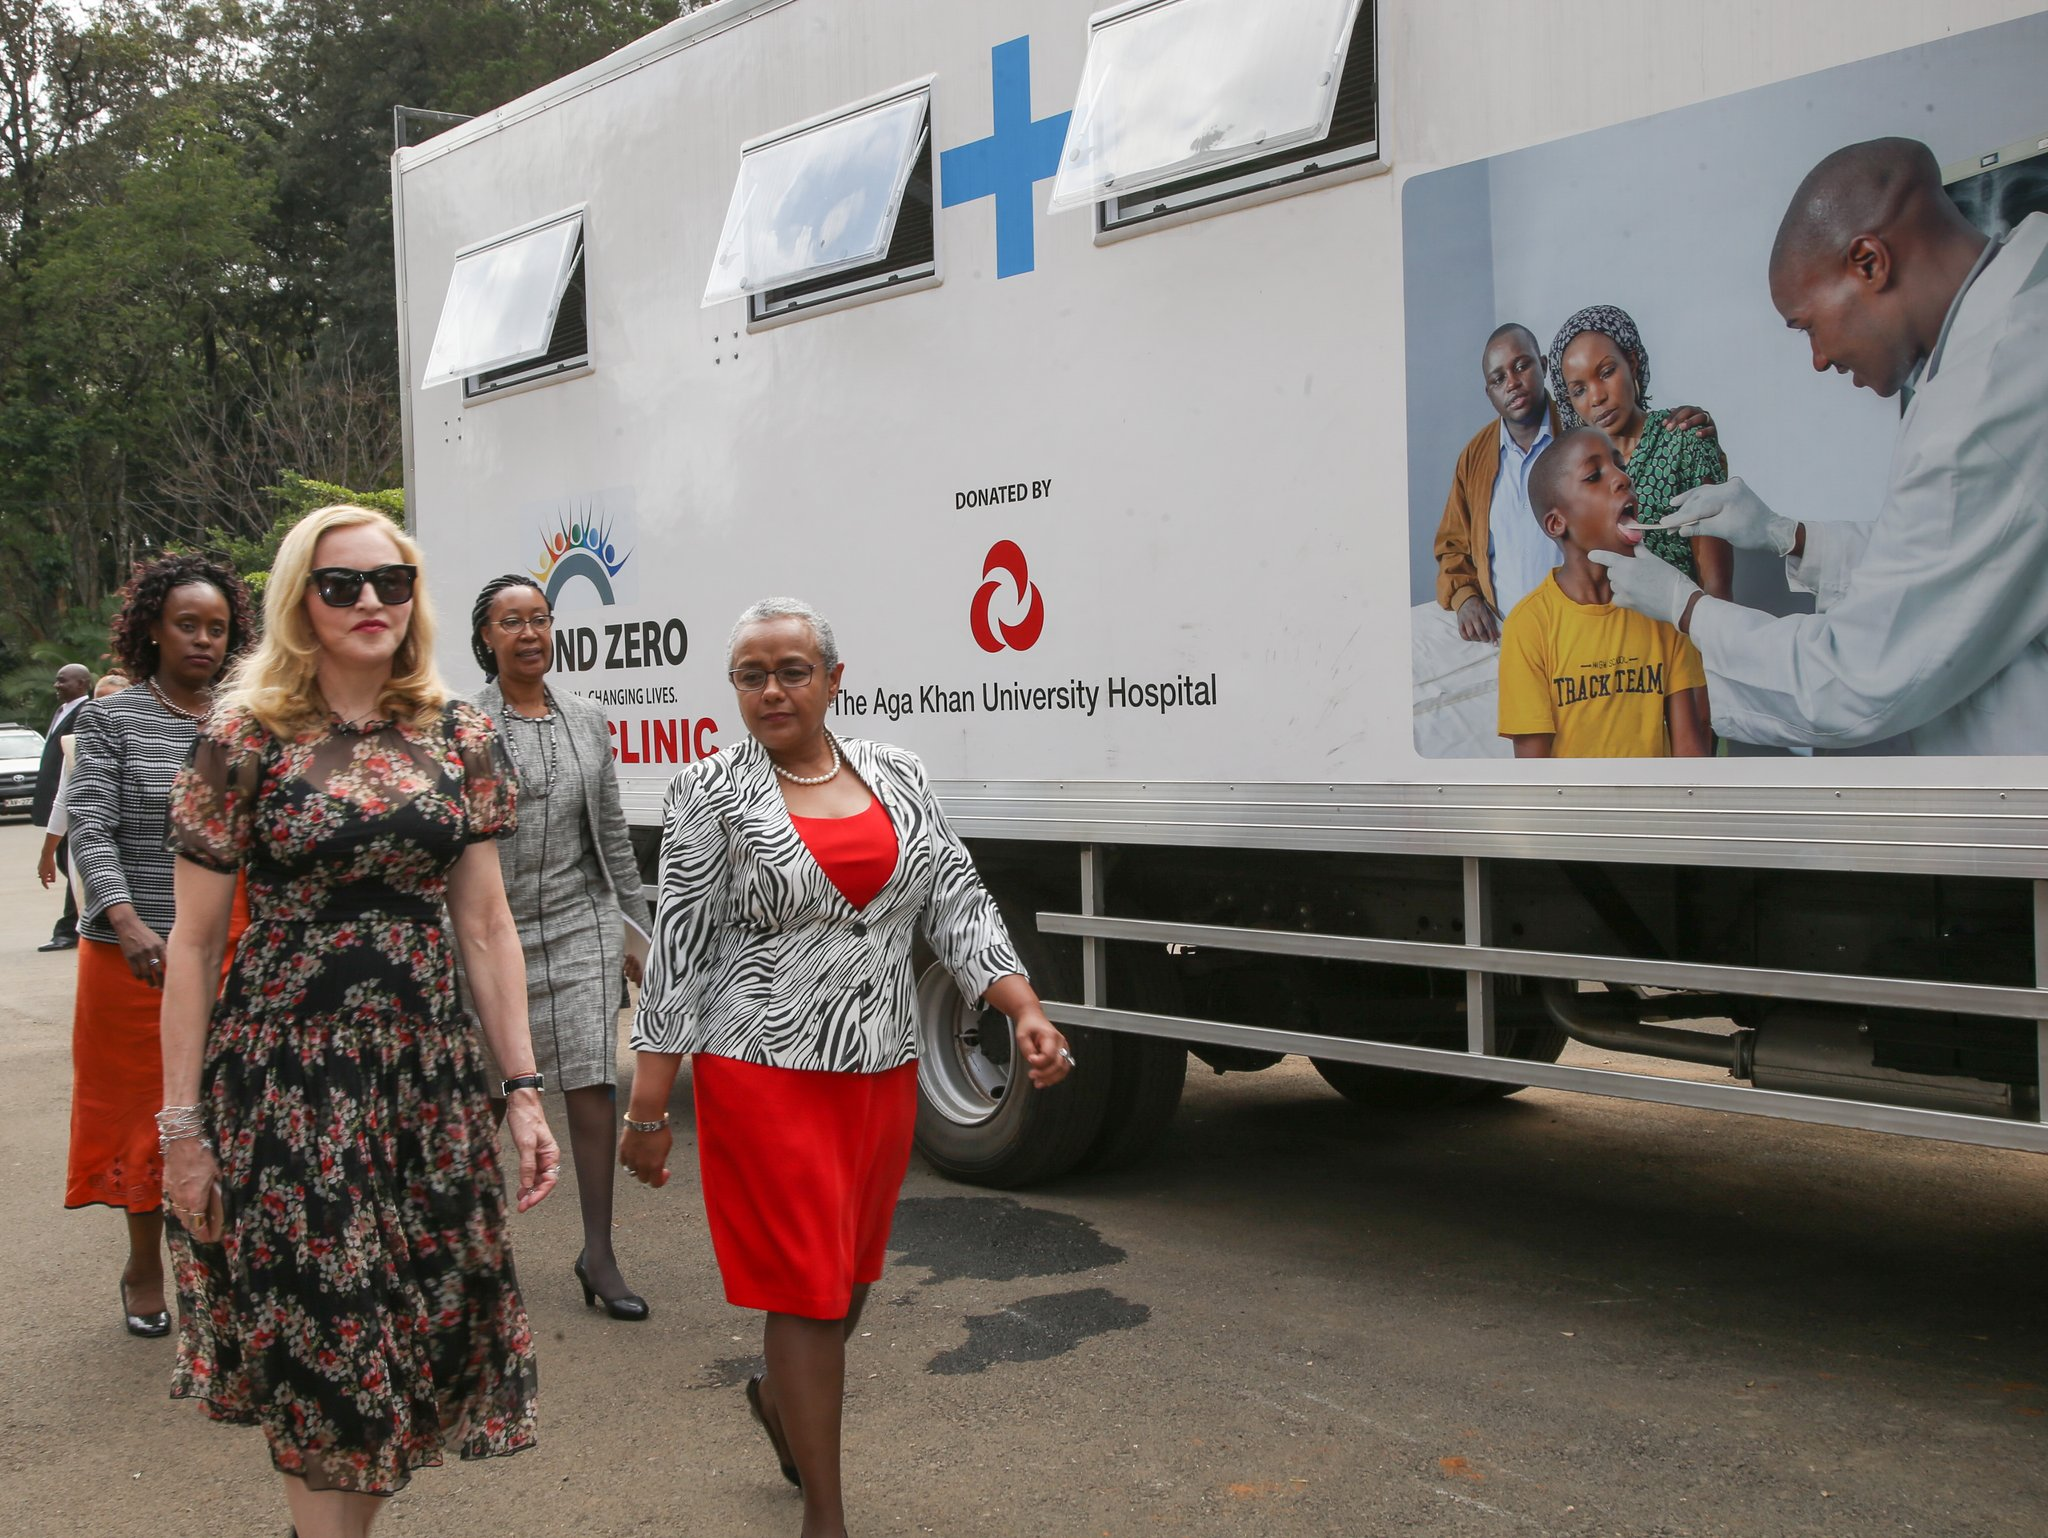 20160704-news-madonna-first-lady-kenya-09